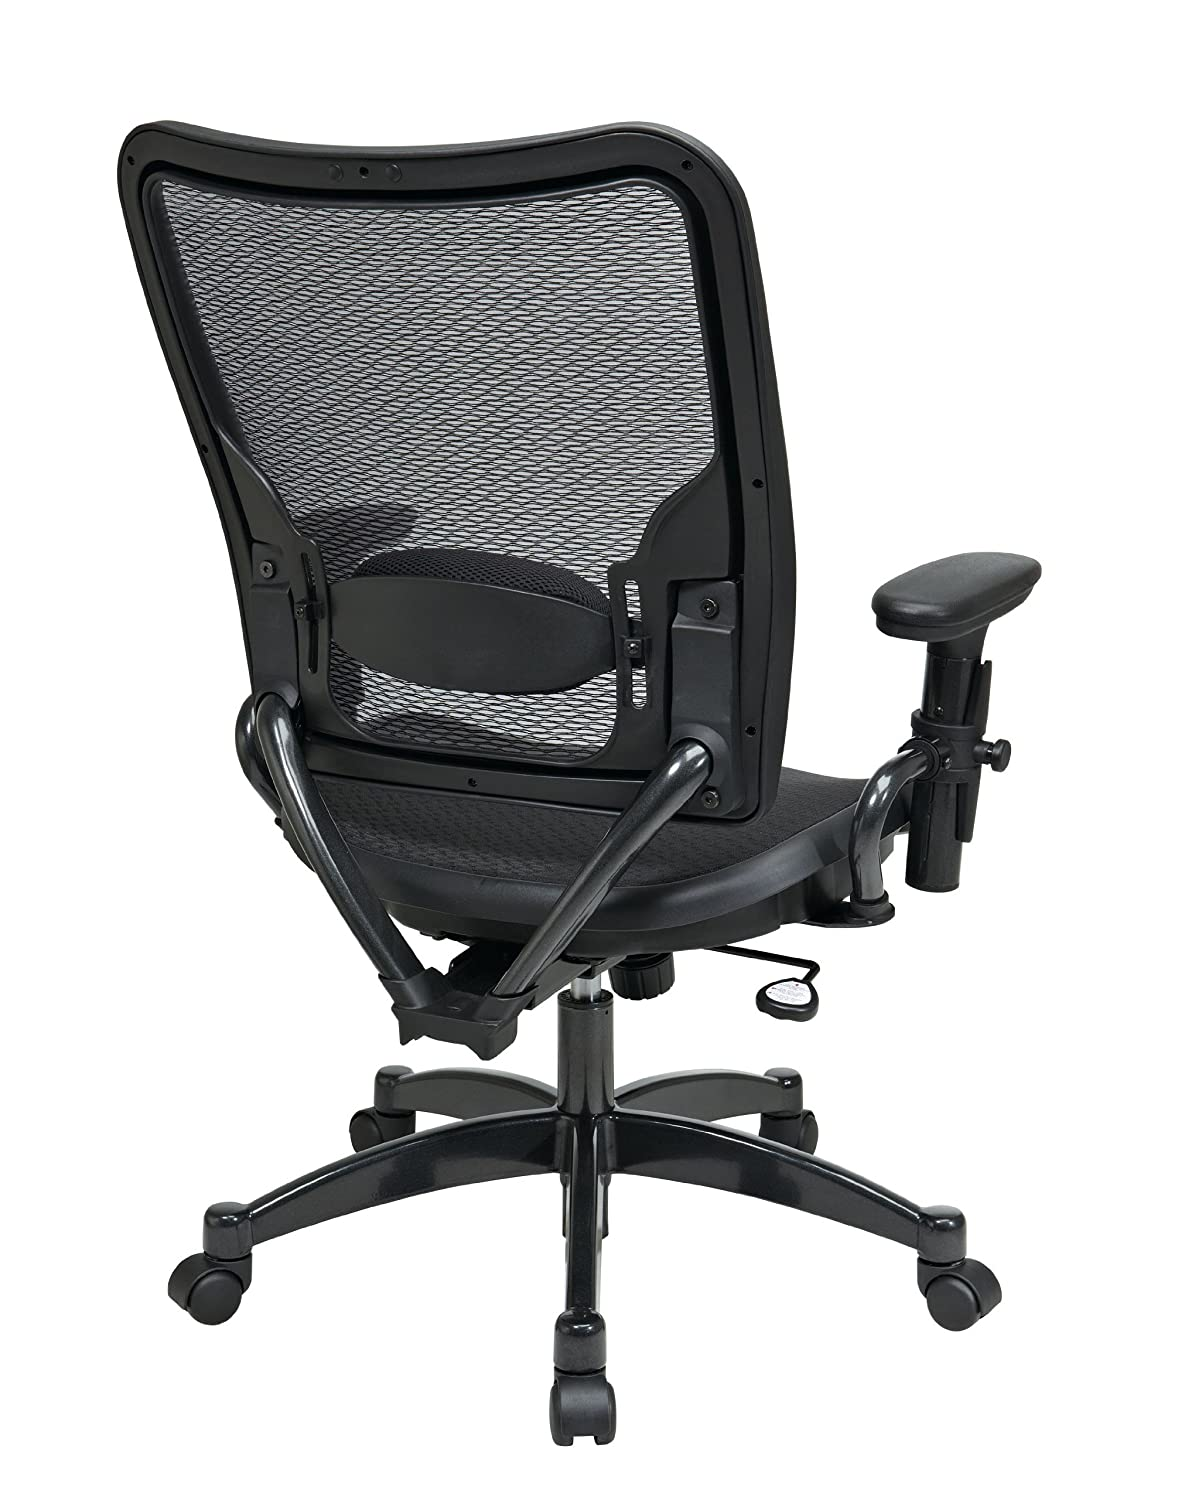 Attirant Amazon.com: SPACE Seating Deluxe AirGrid Dark Back And Seat, 2 To 1 Synchro  Tilt Control, Adjustable Arms, Tilt Tension And Lumbar Support With  Gunmetal ...